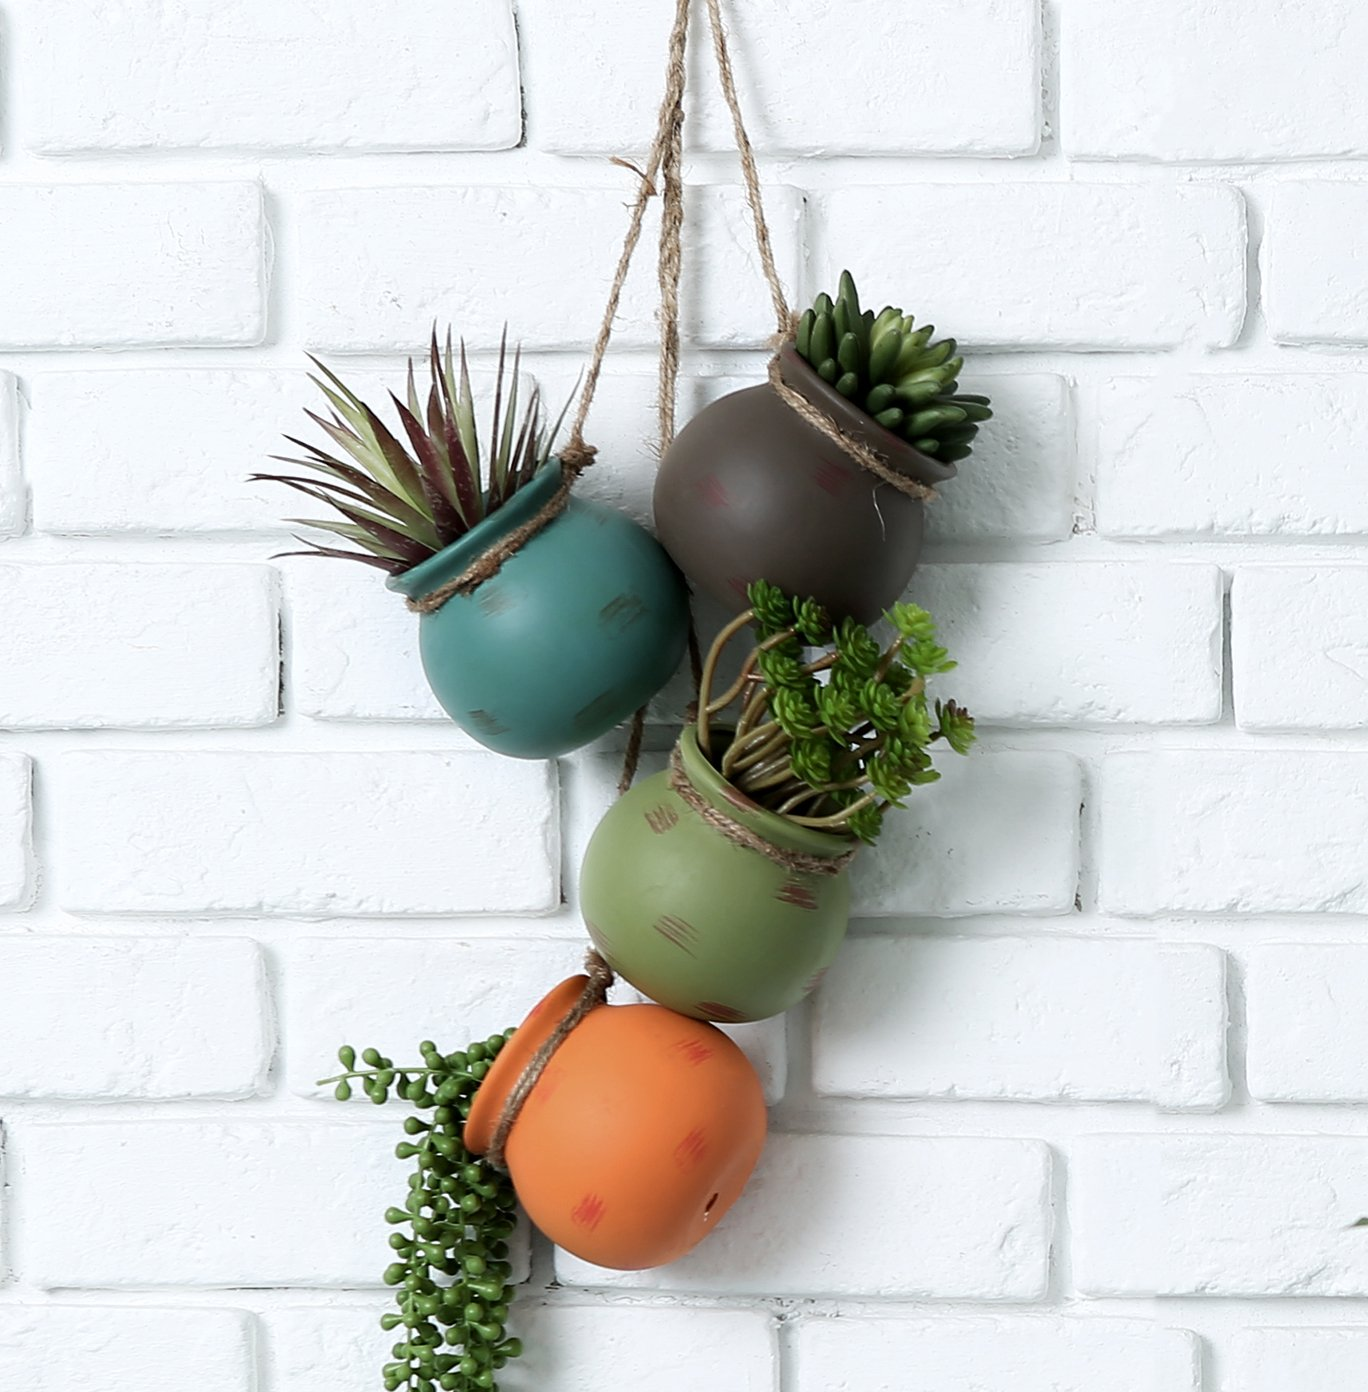 Dangling Multicolor Ceramic 4 Pot Set, Wall or Ceiling Mount Hanging Mini Flower Planters by MyGift